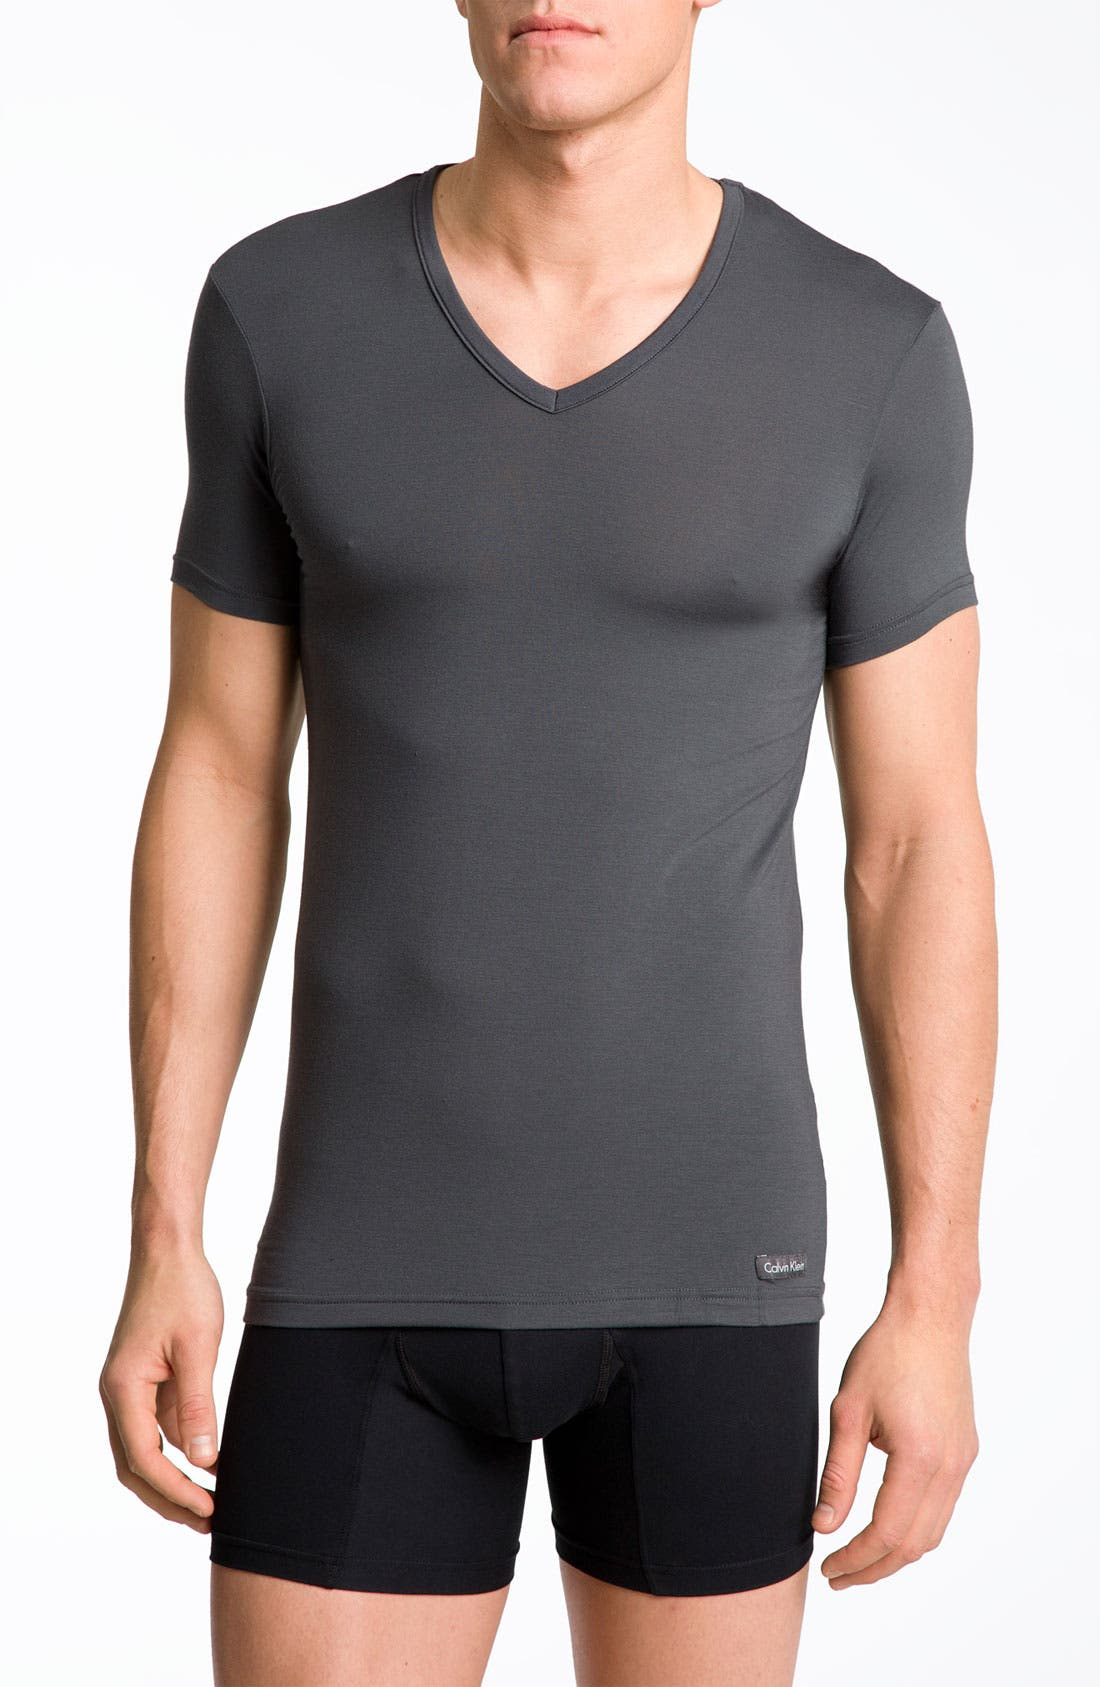 Alternate Image 1 Selected - Calvin Klein 'U5563' V-Neck Micromodal T-Shirt